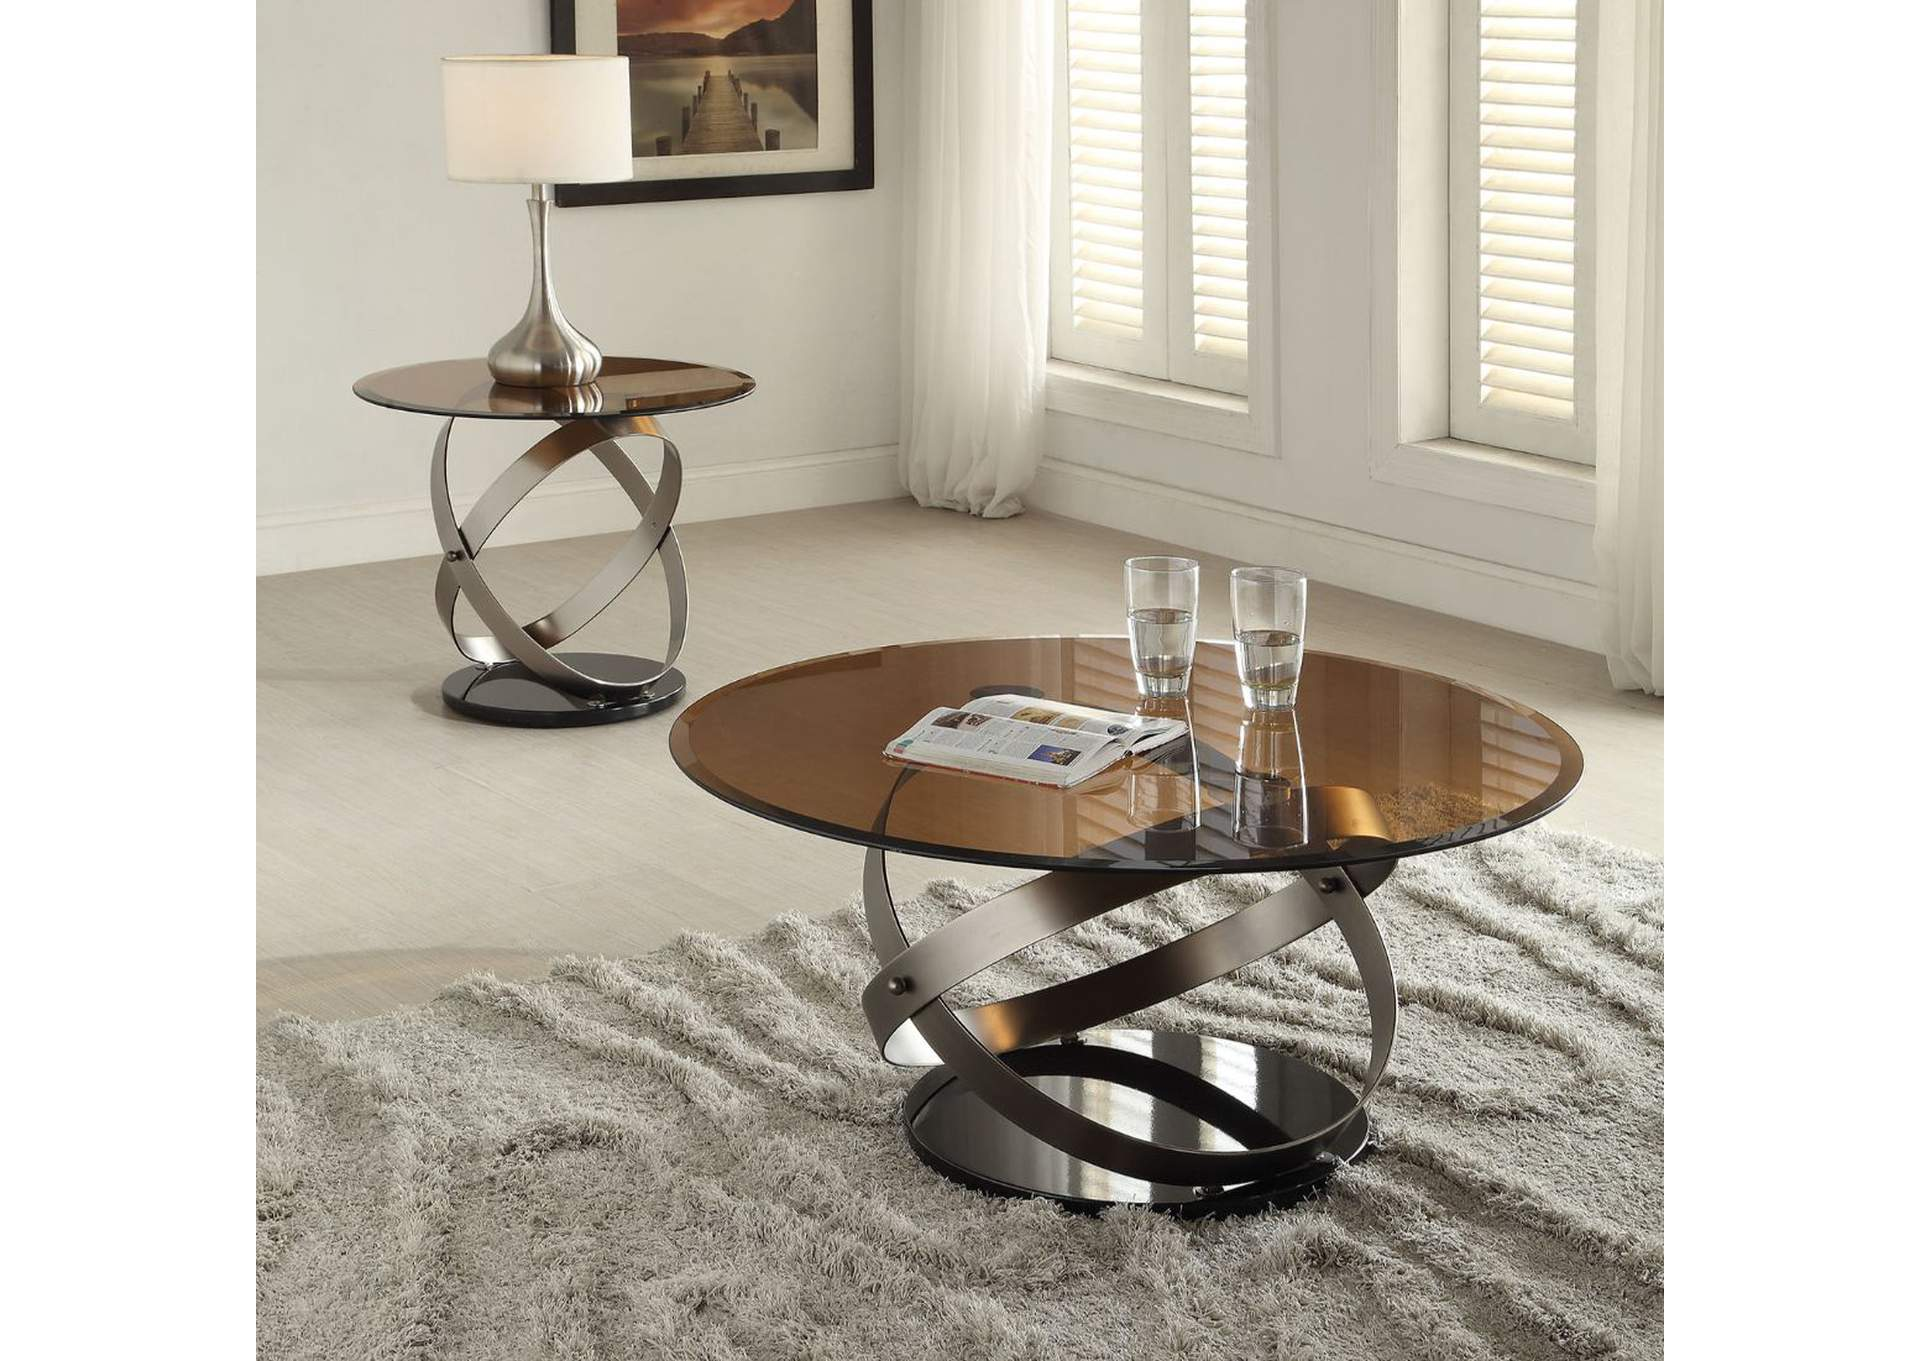 Olly Satin/Black & Smoky Glass Coffee Table,Acme